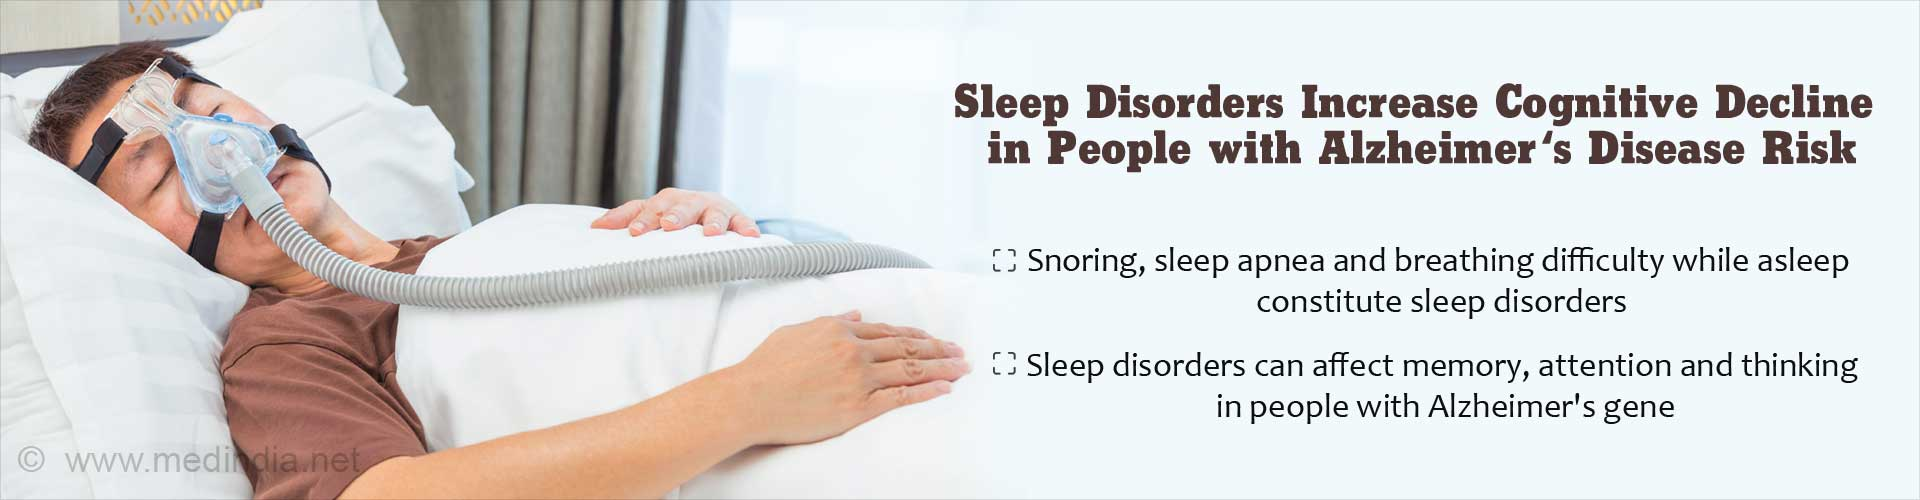 People With Sleep Disorders at High Risk for Alzheimer's